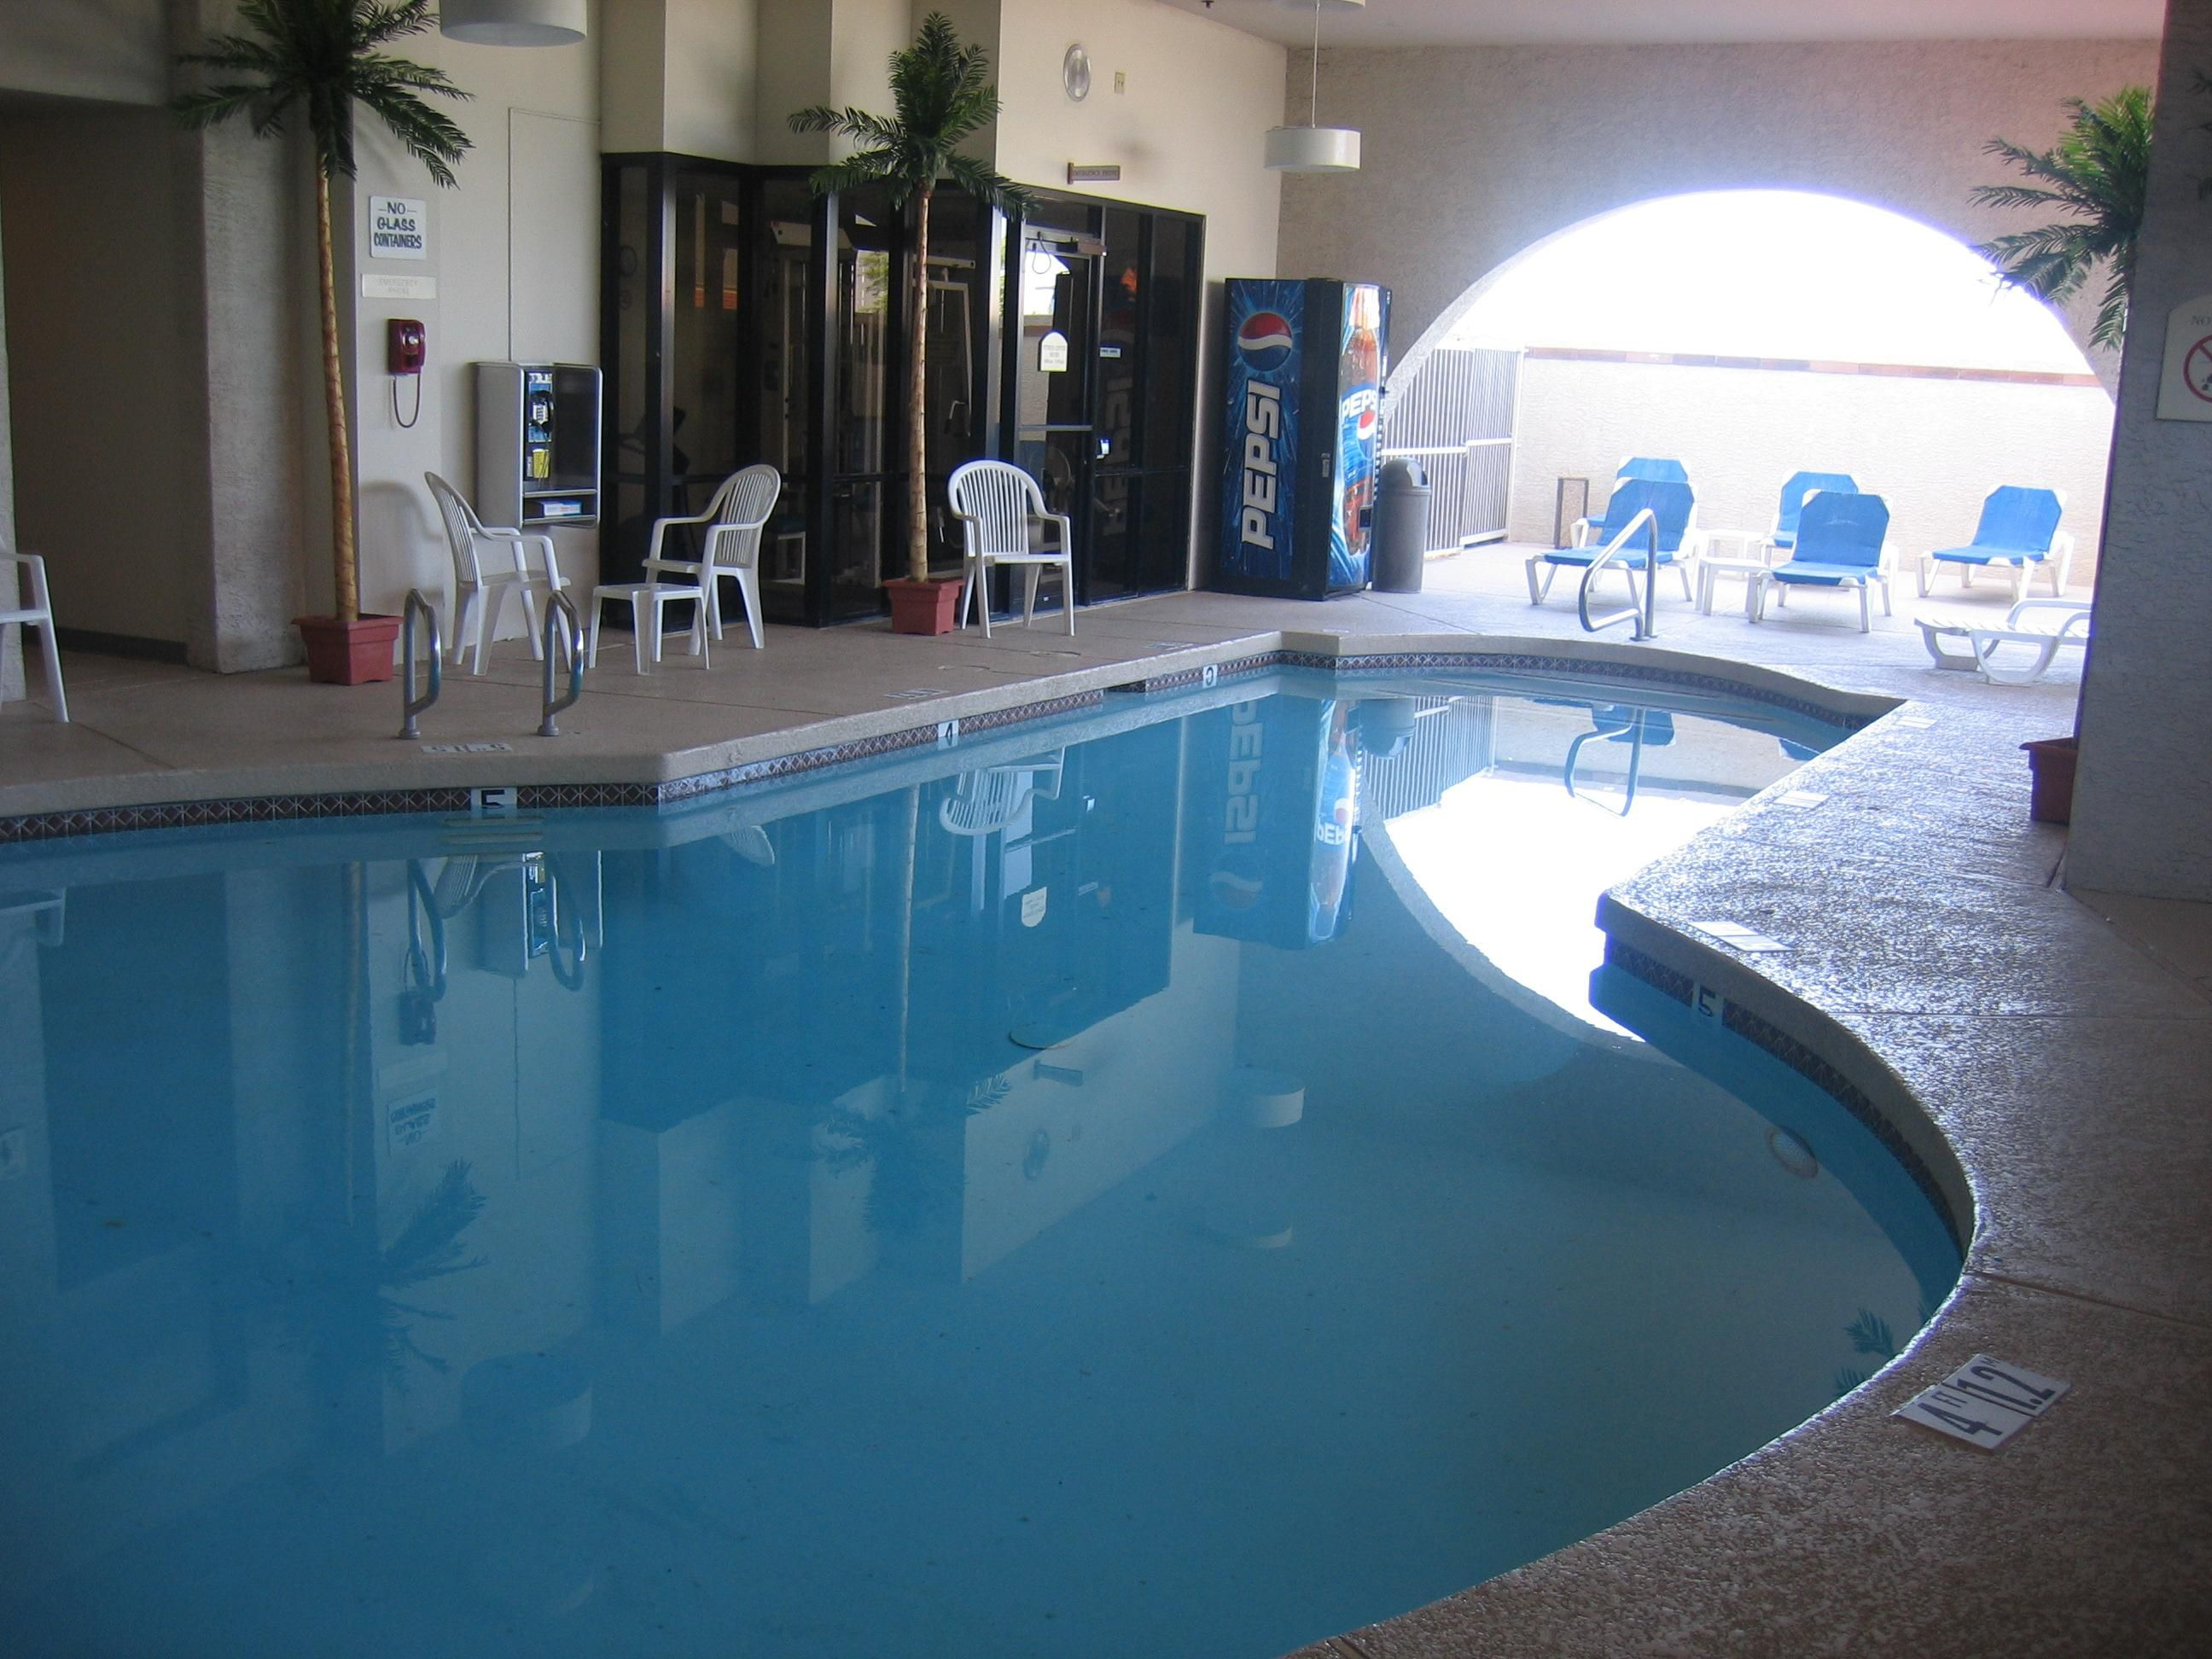 Year Round heated covered outdoor pool